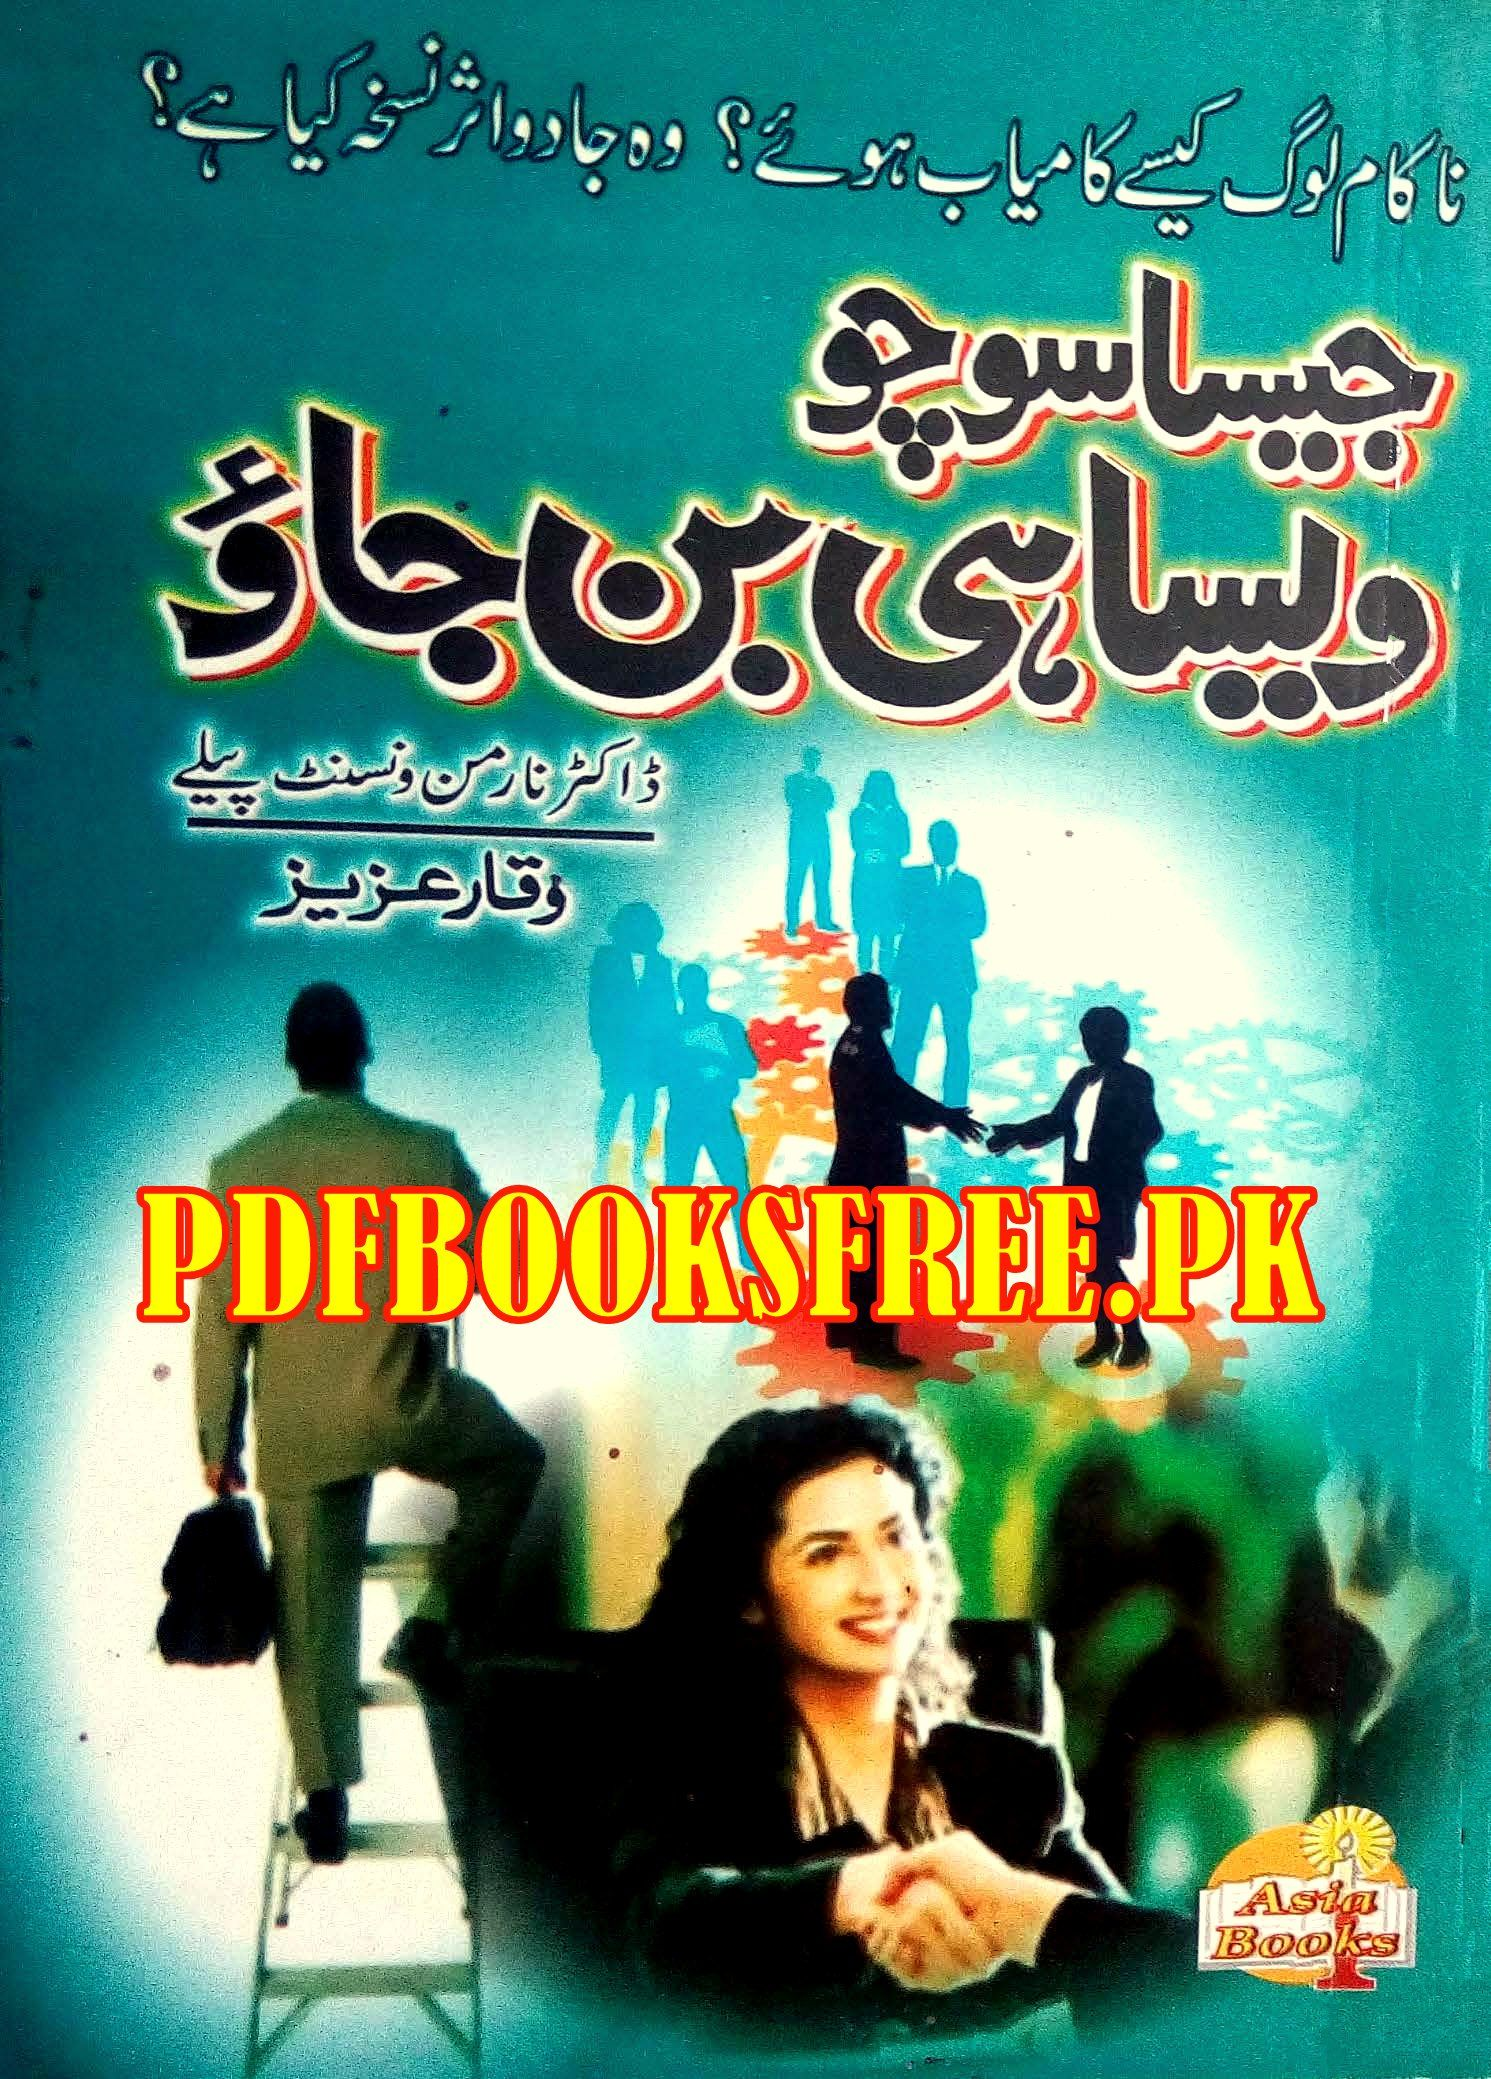 Libros Islamicos Gratis The Power Of Positive Thinking In Urdu Pinterest